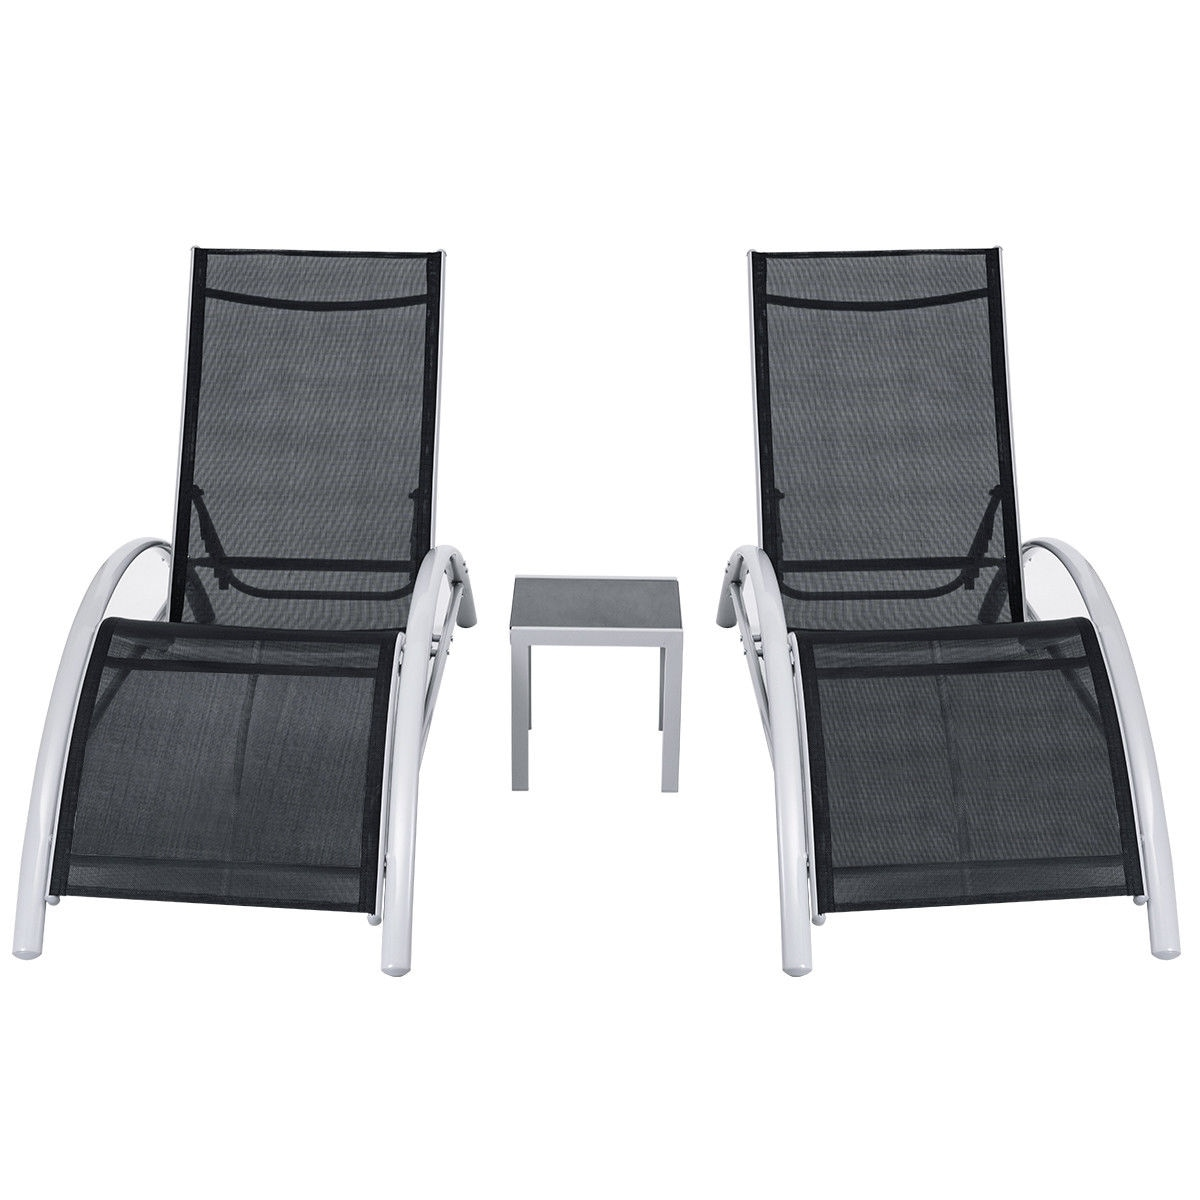 Shop 3 PCS Outdoor Patio Pool Lounger Set Reclining Garden Chairs Glass  Table   Free Shipping Today   Overstock.com   19626738